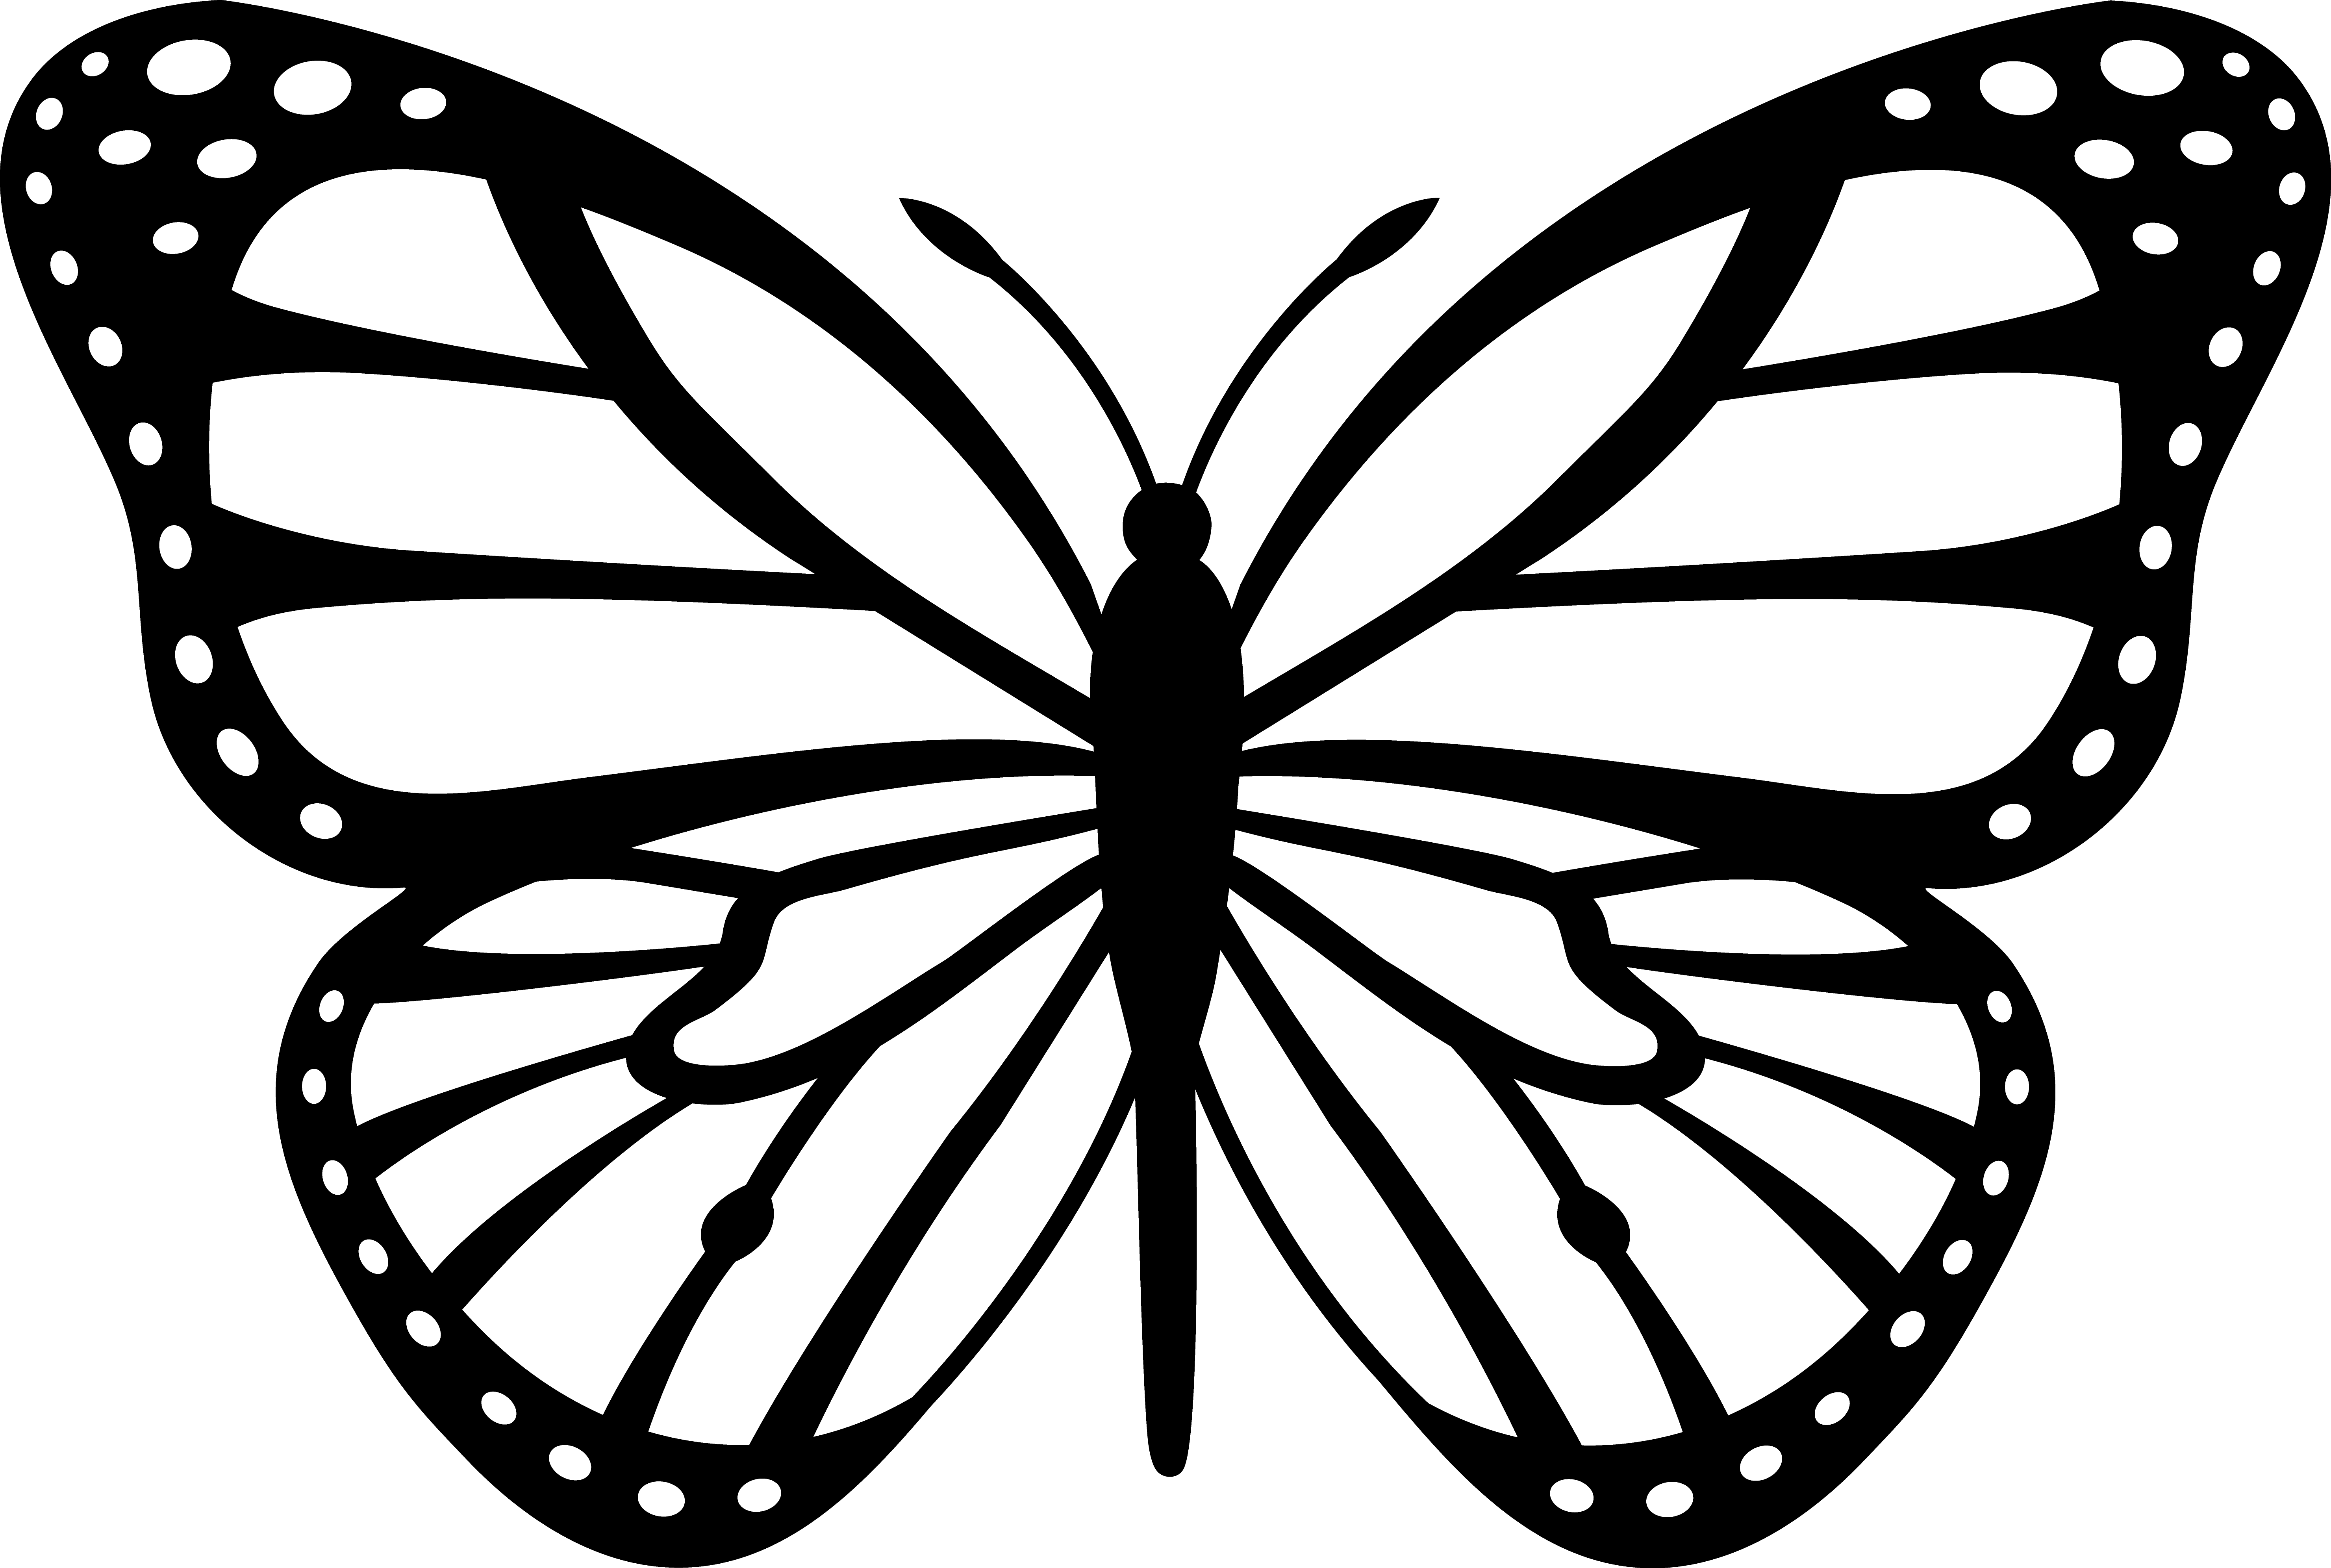 Free Butterfly Clipart U0026middot; Whit-free butterfly clipart u0026middot; white clipart-14